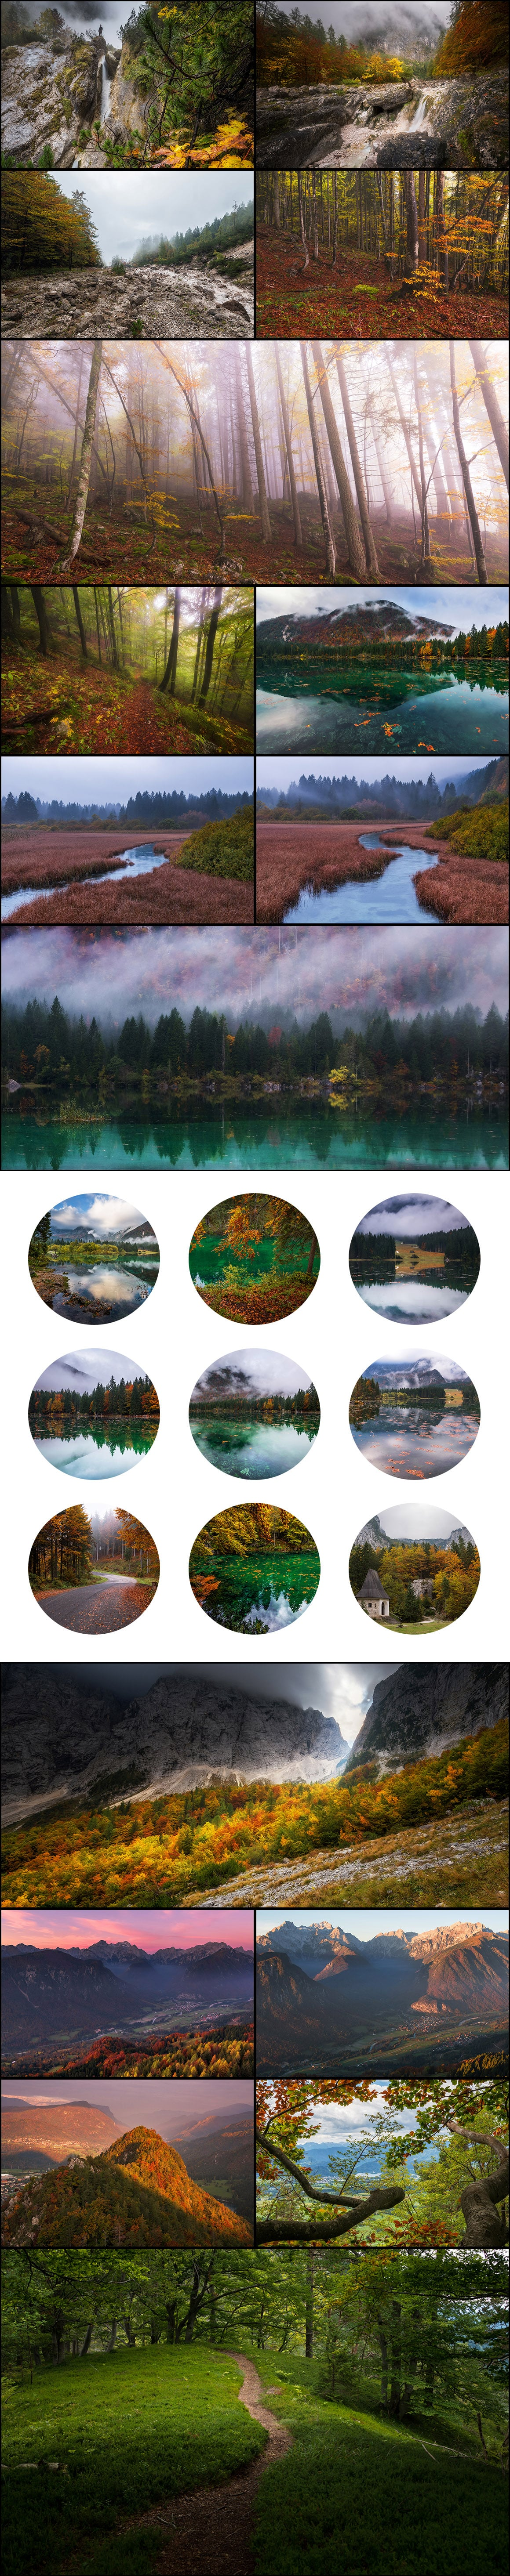 500+ Stock Images. Ultimate Photo Bundle  – $59 - PREVIEW autumn